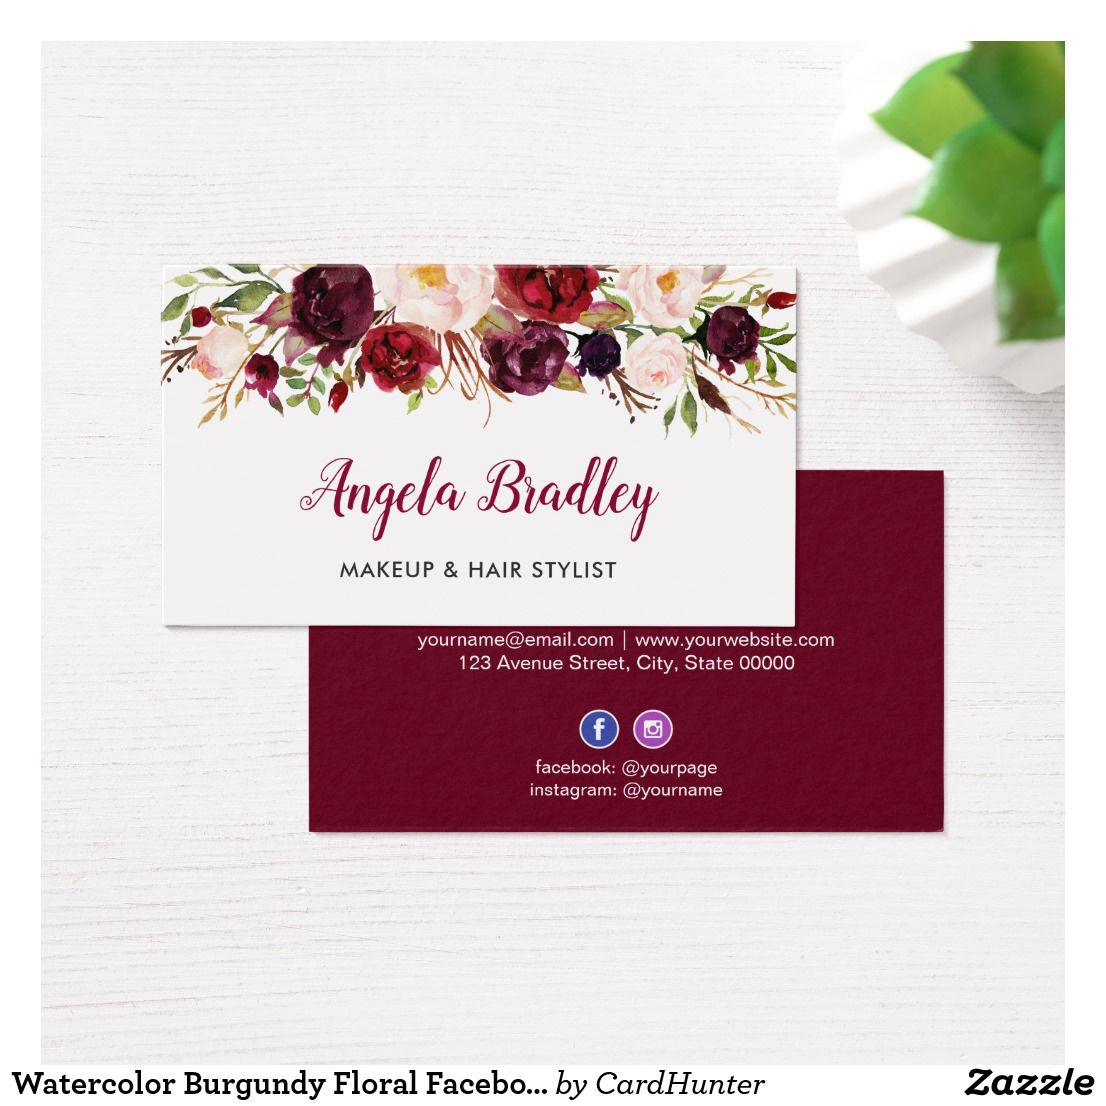 Watercolor Burgundy Floral Facebook Instagram Logo Business Card Zazzle Com Facebook And Instagram Logo Instagram Logo Business Card Logo